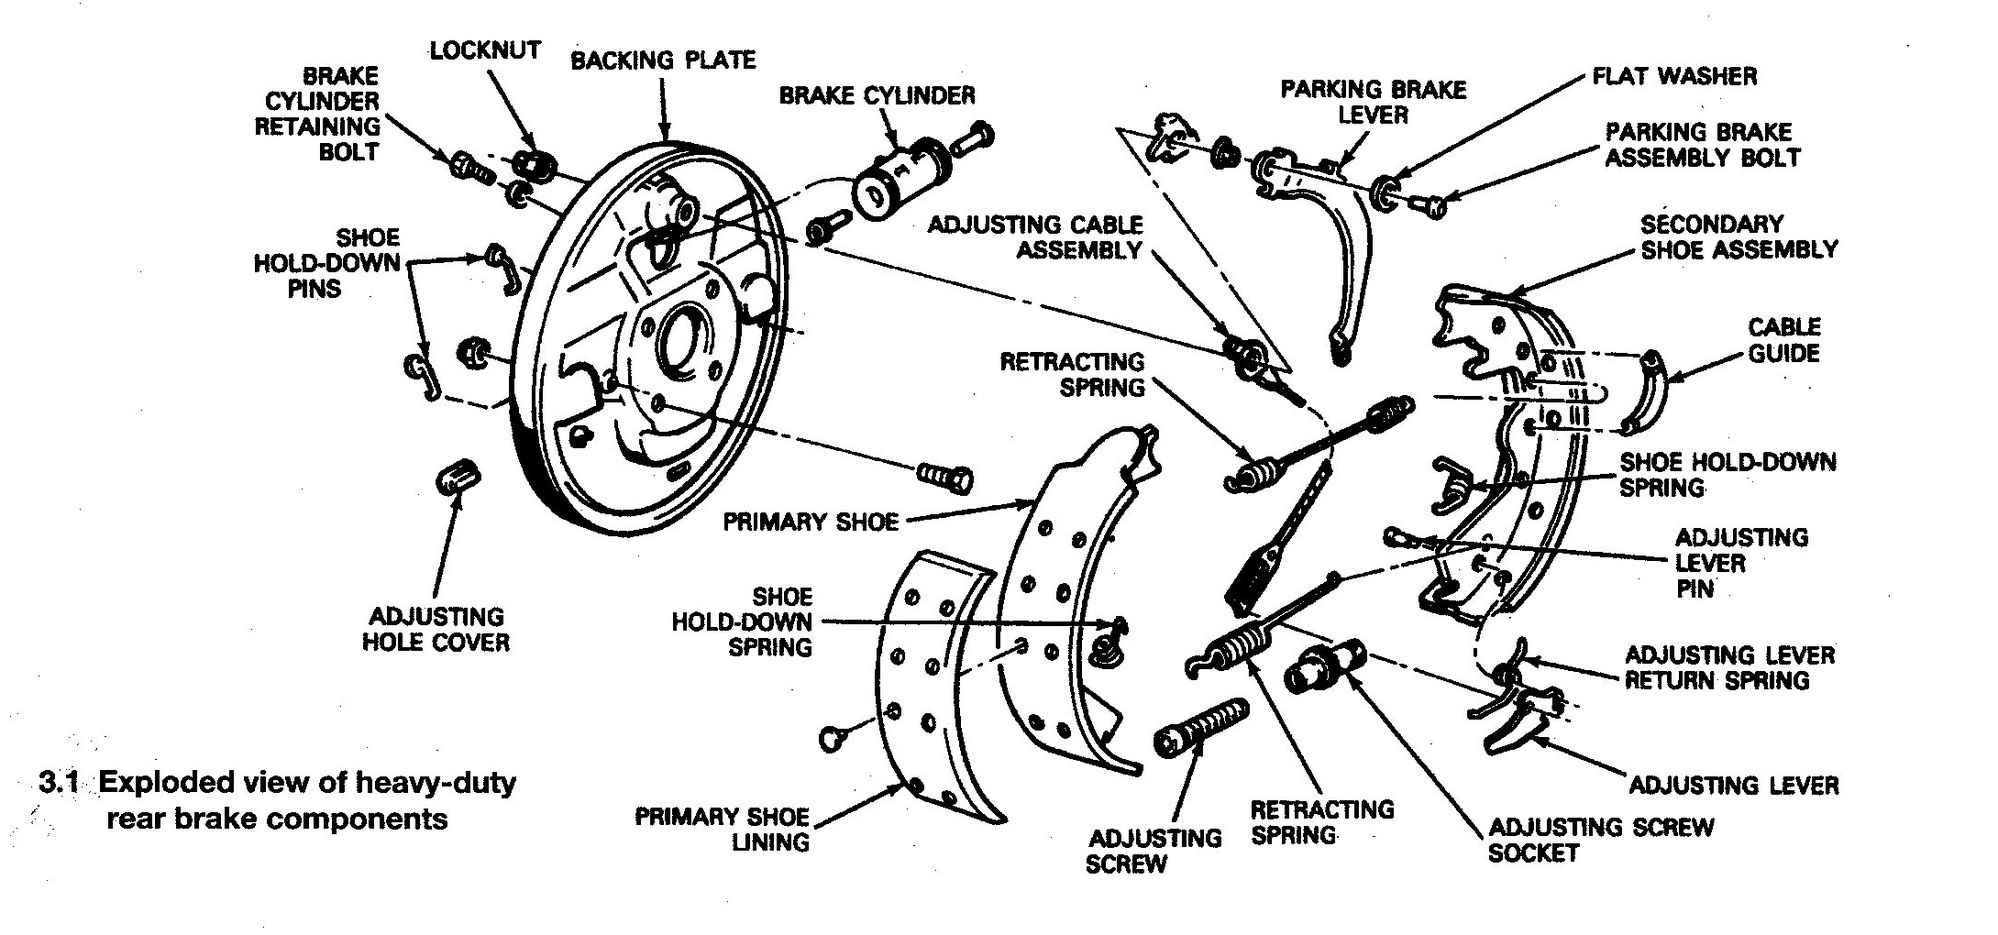 jaguar xj8 rear axle diagram  jaguar  free engine image